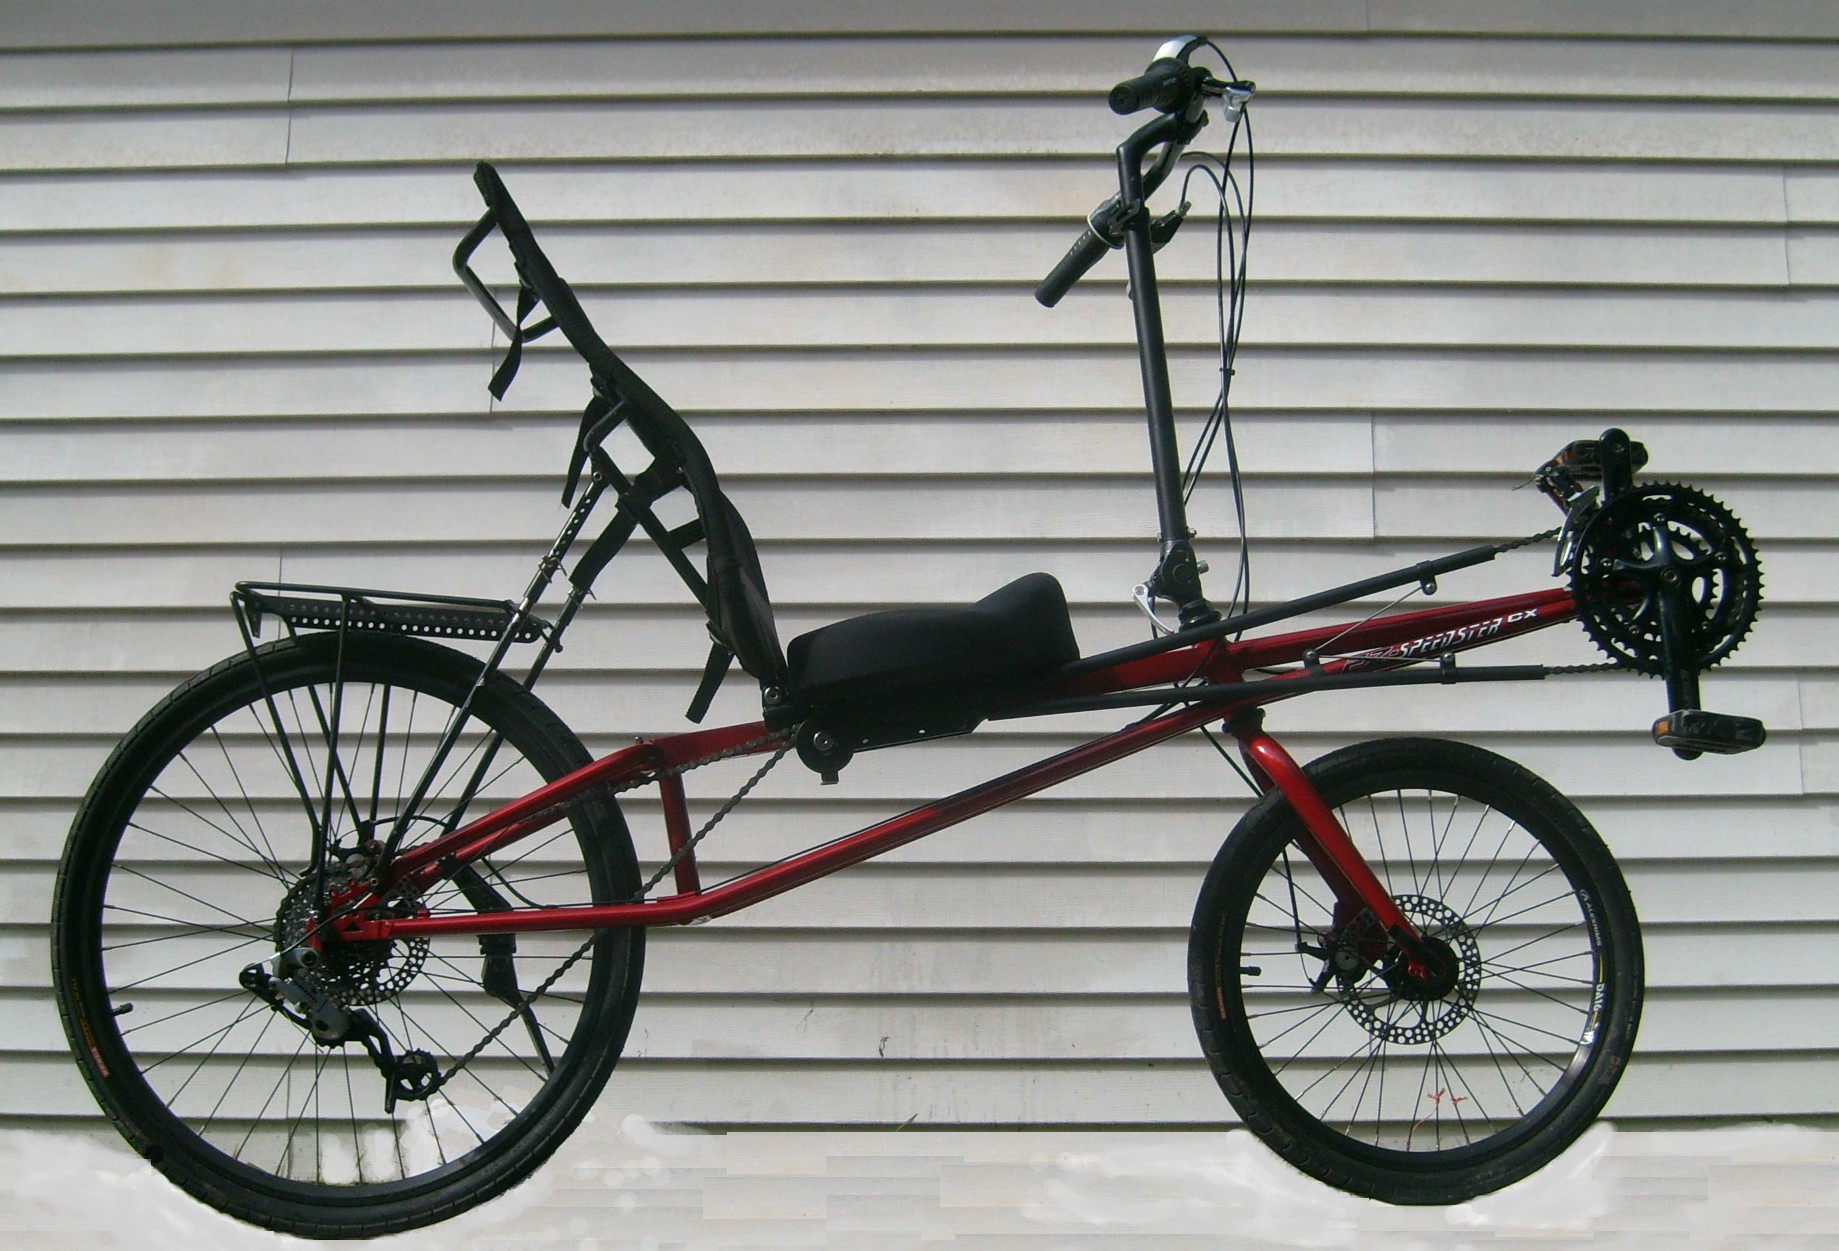 Craigslist Bikes For Sale Bicycles Use Google alerts which sends